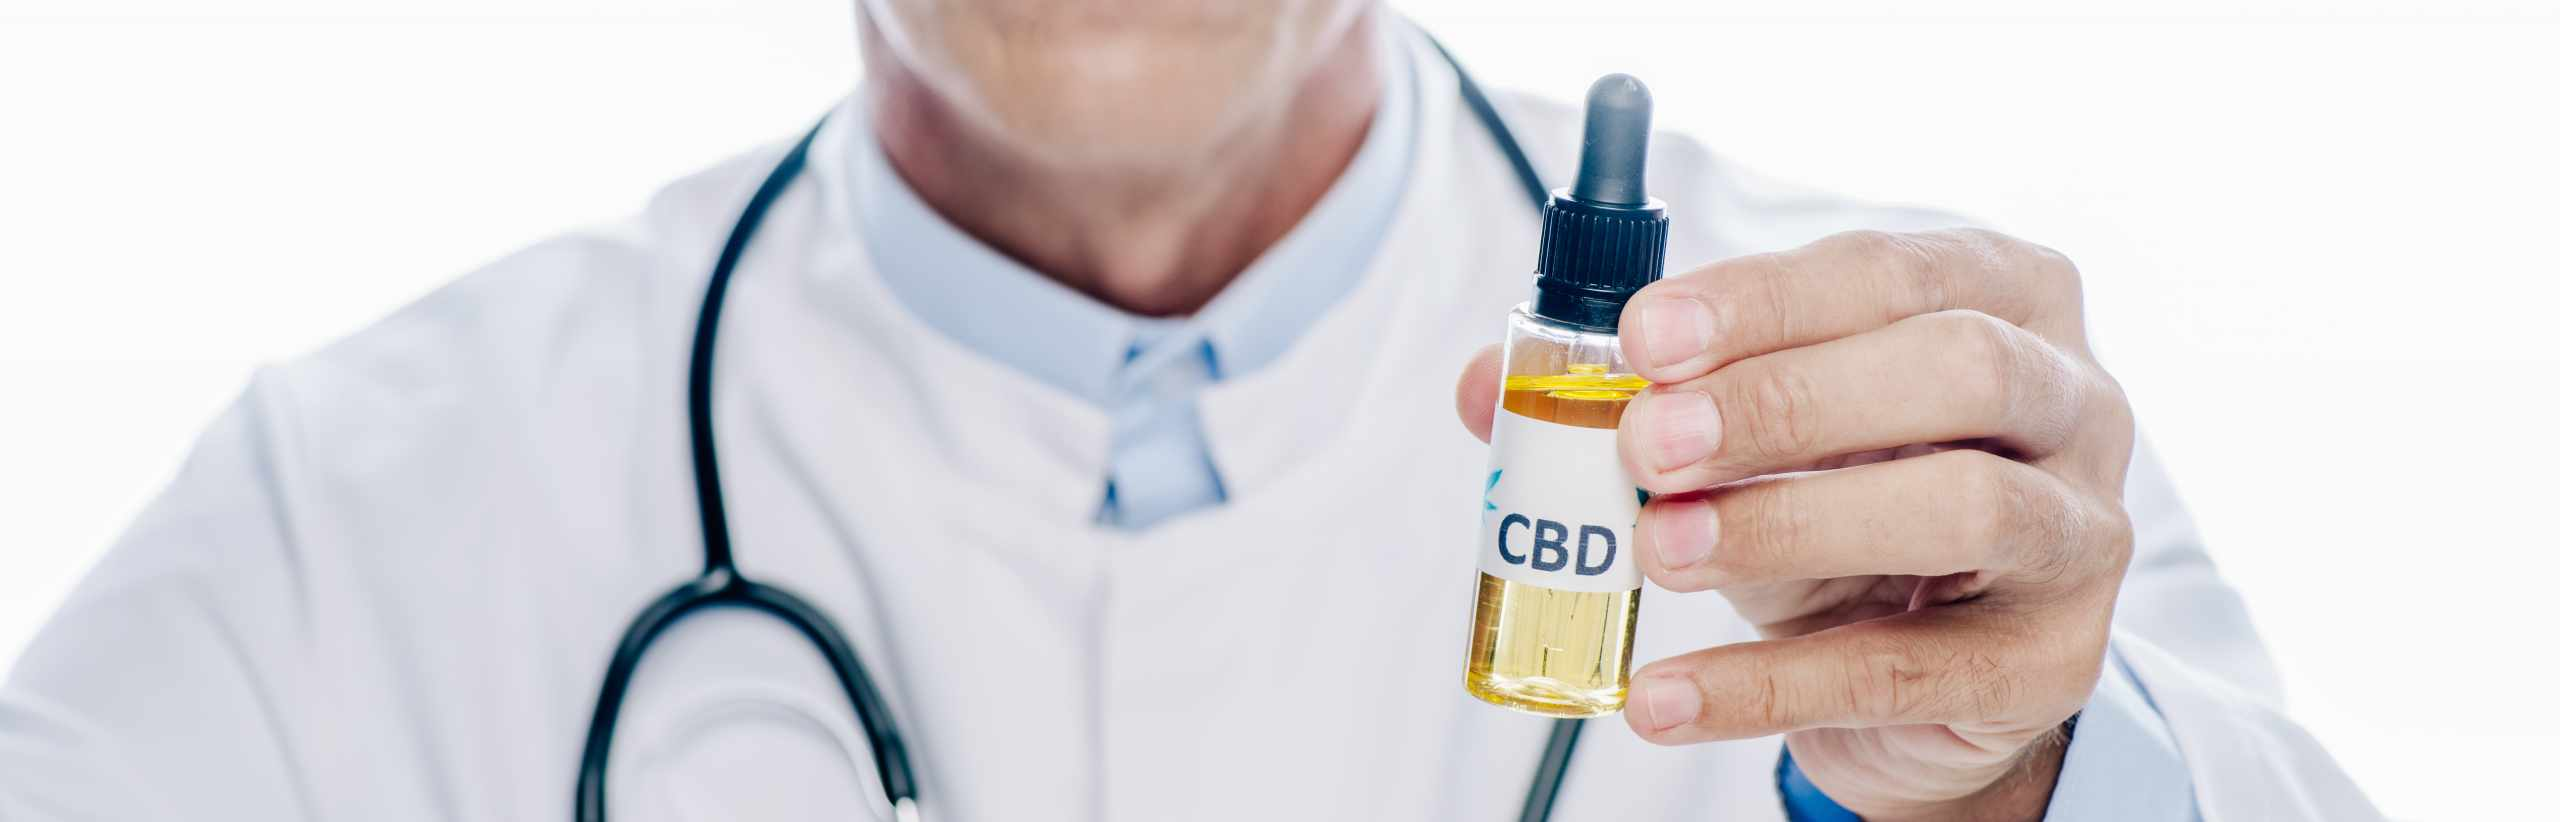 5 Things To Know Before Trying Out CBD For The First Time